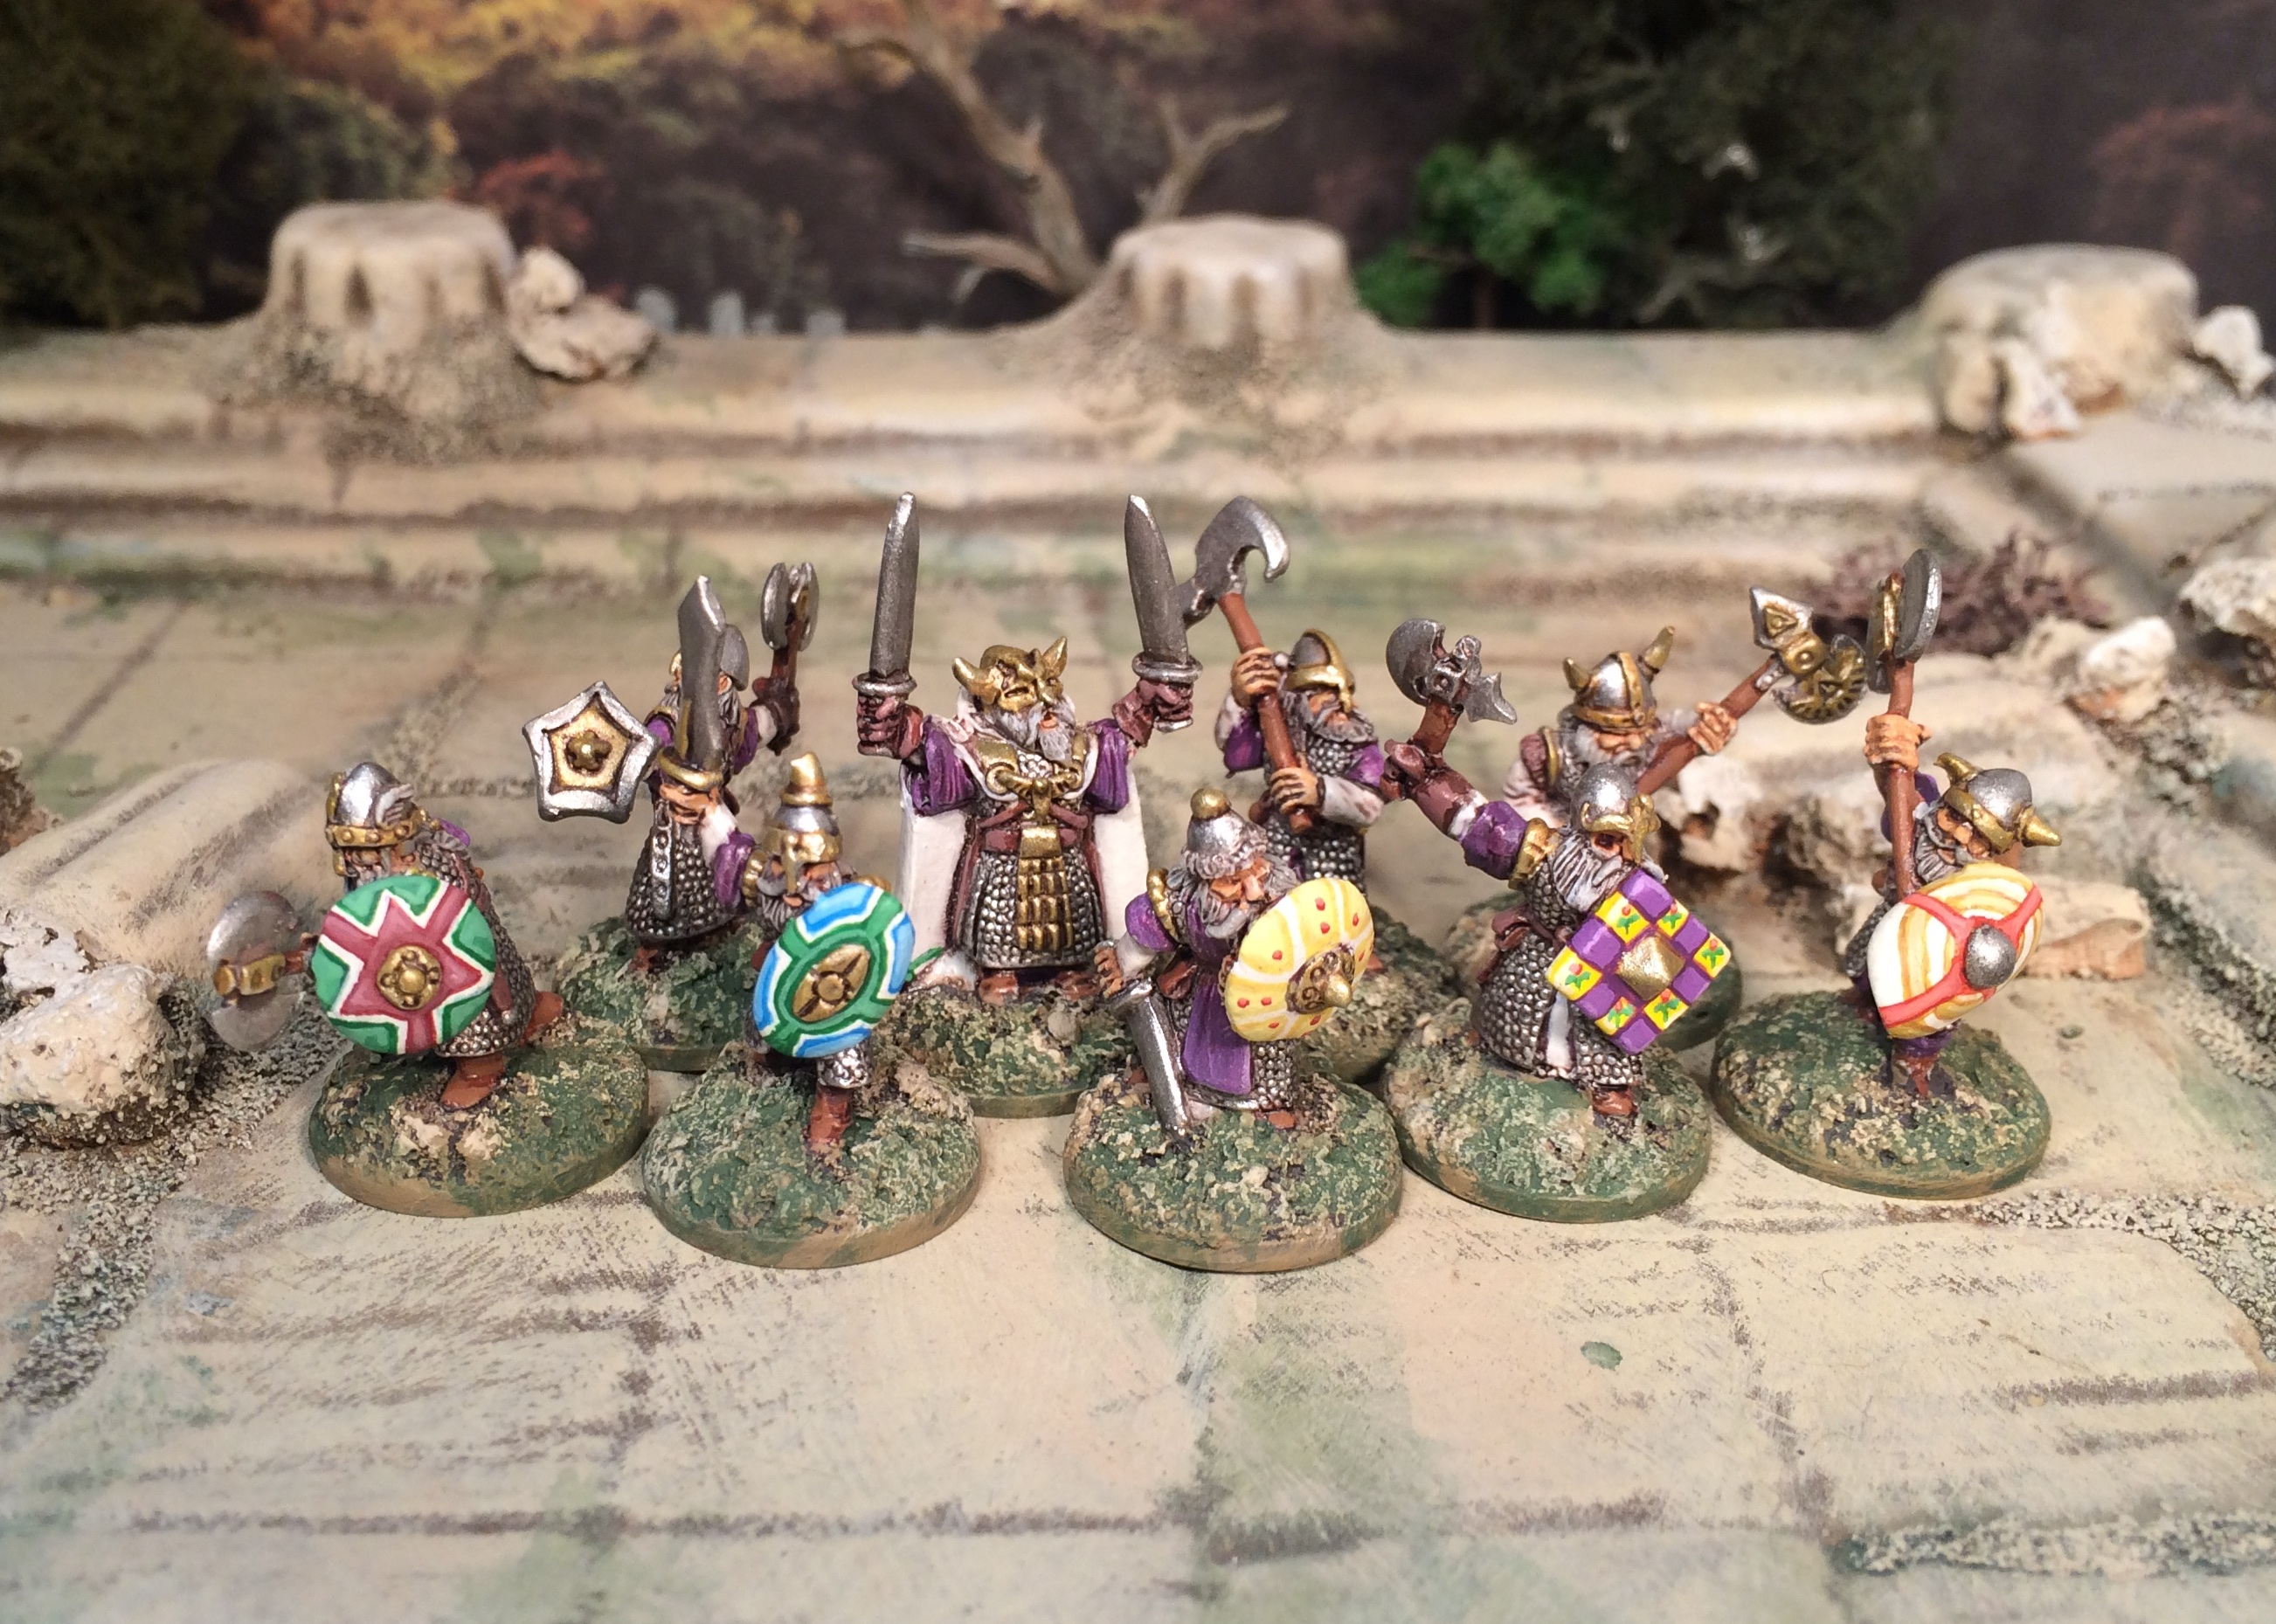 15mm dwarves from Black Raven